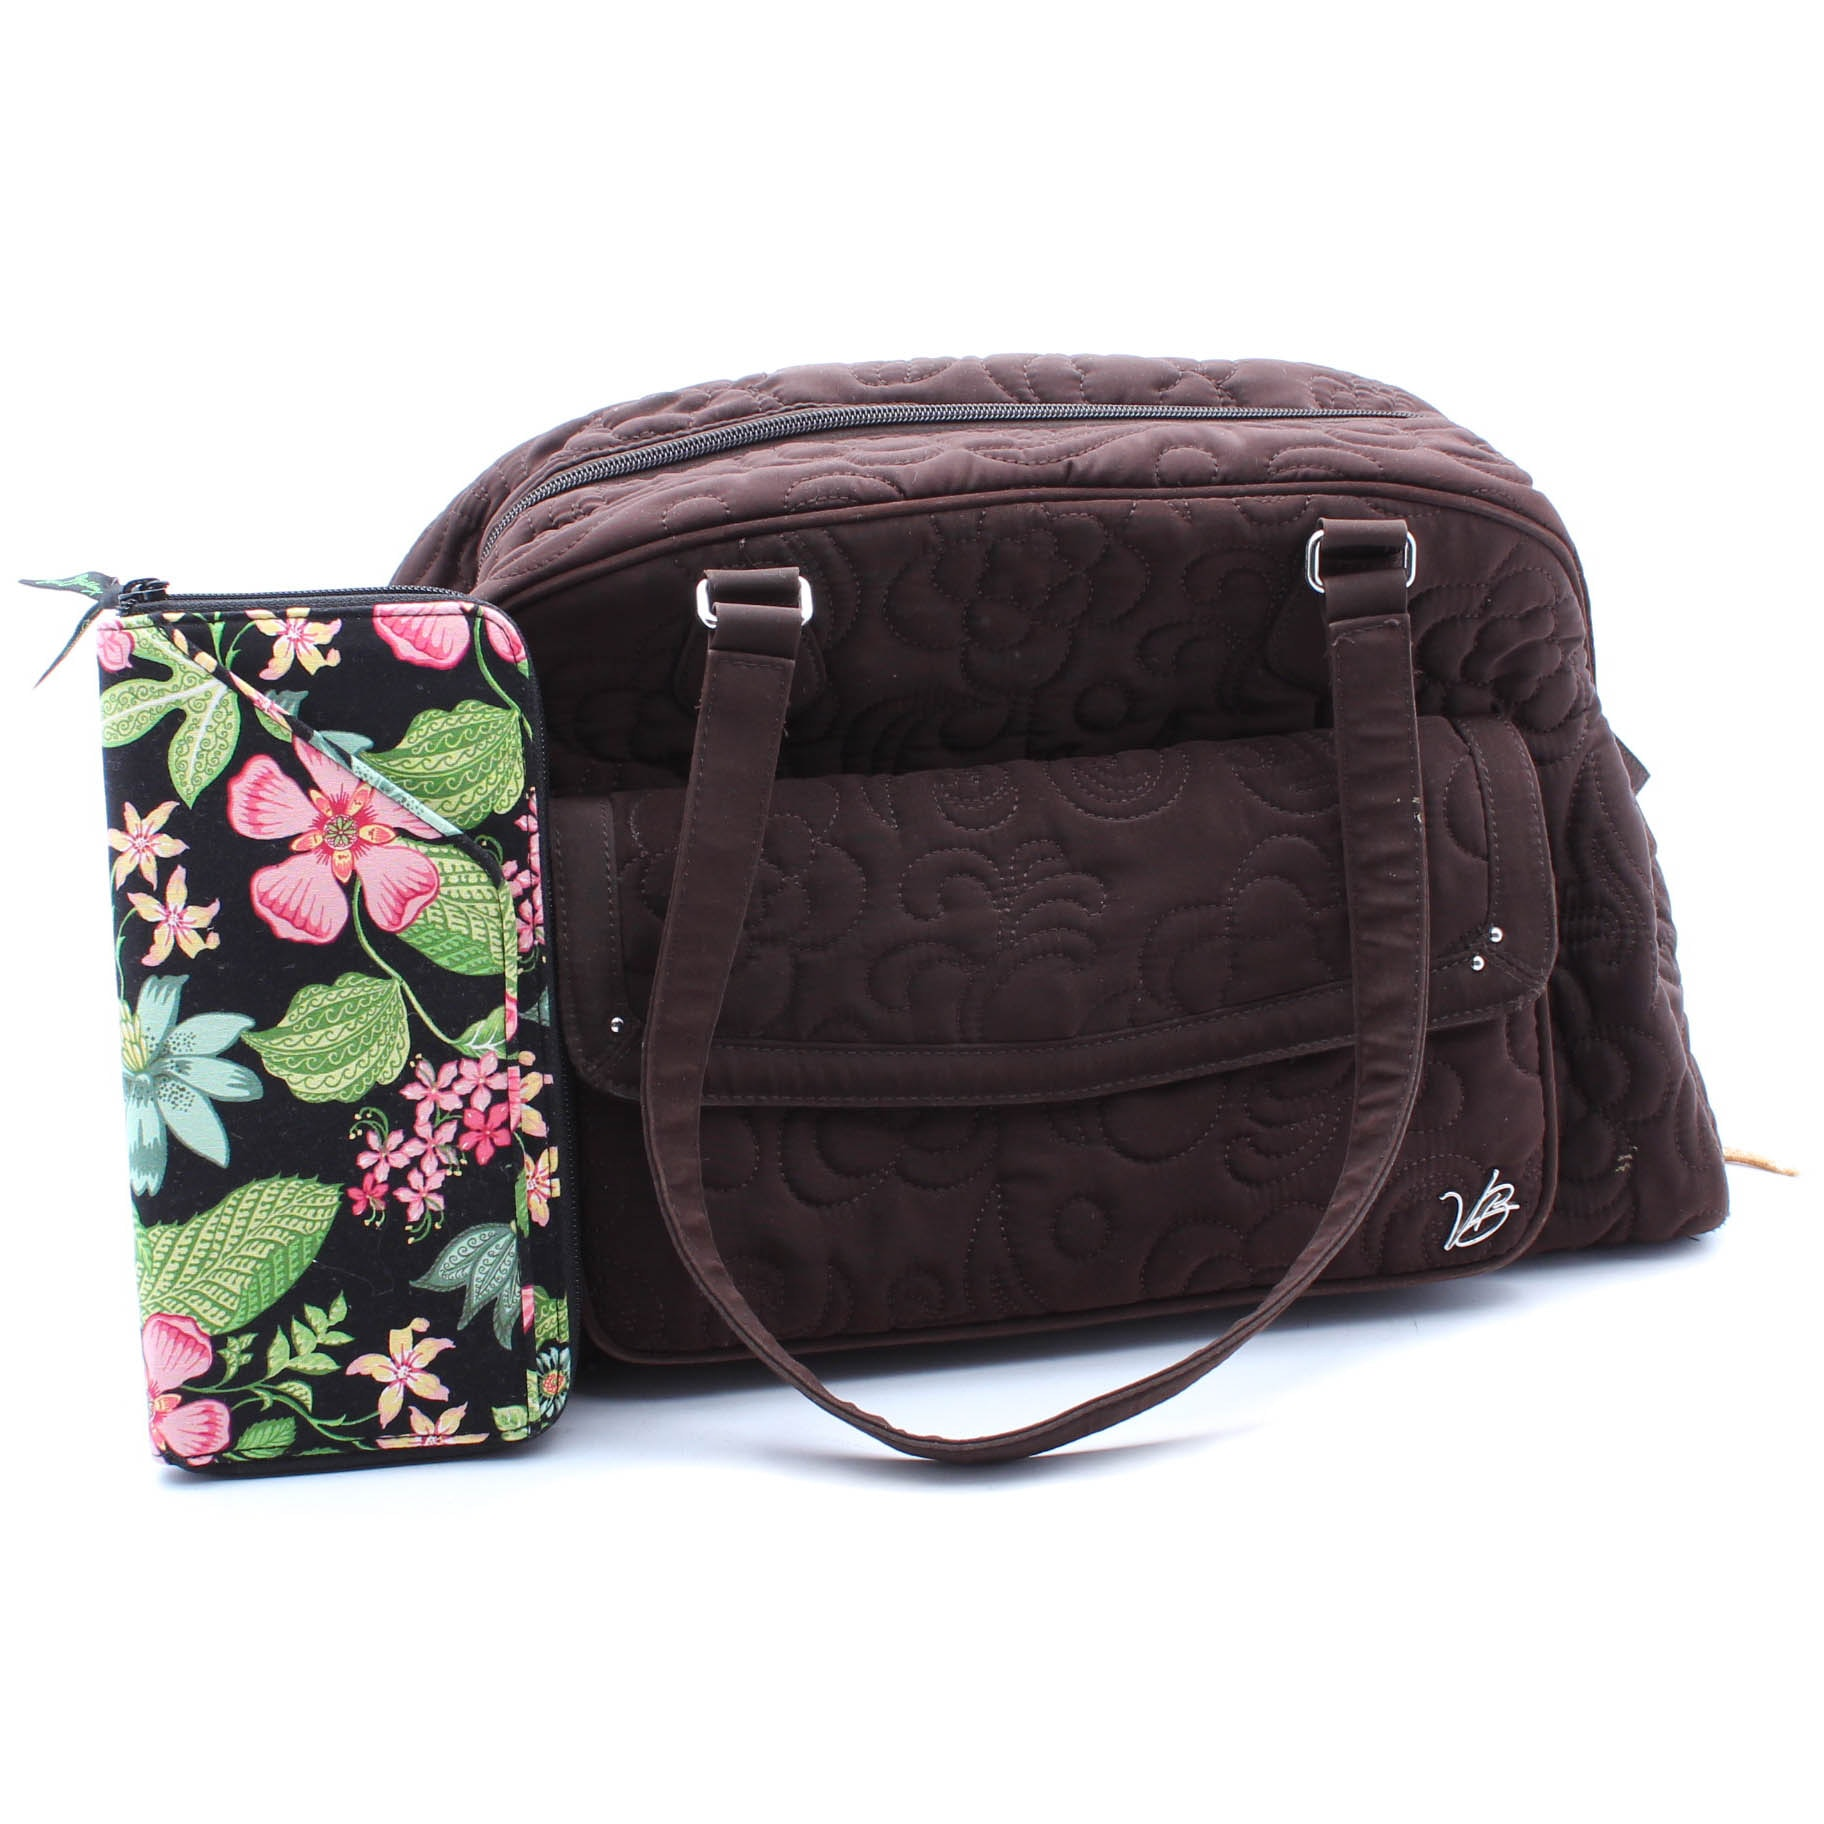 Vera Bradley Quilted Brown Cotton Diaper Bag and Multicolor Wallet